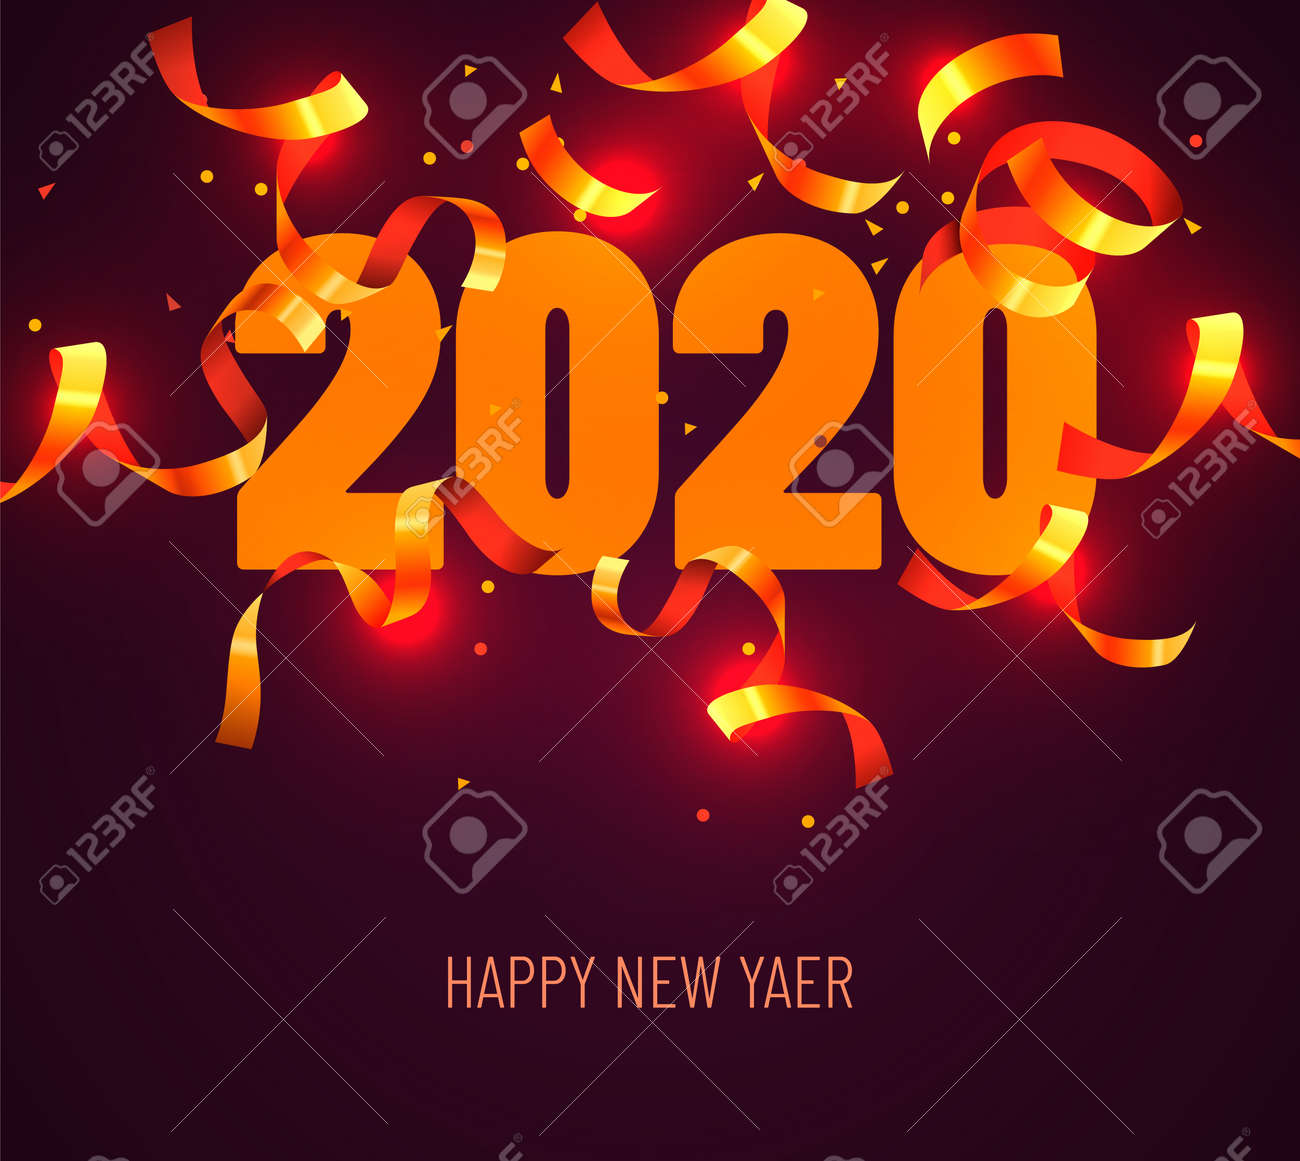 2020 Happy New Year Greeting with Gold Confetti. Vector Illustration. Design element for flyers, leaflets, postcards and posters. Vector illustration - 134155694